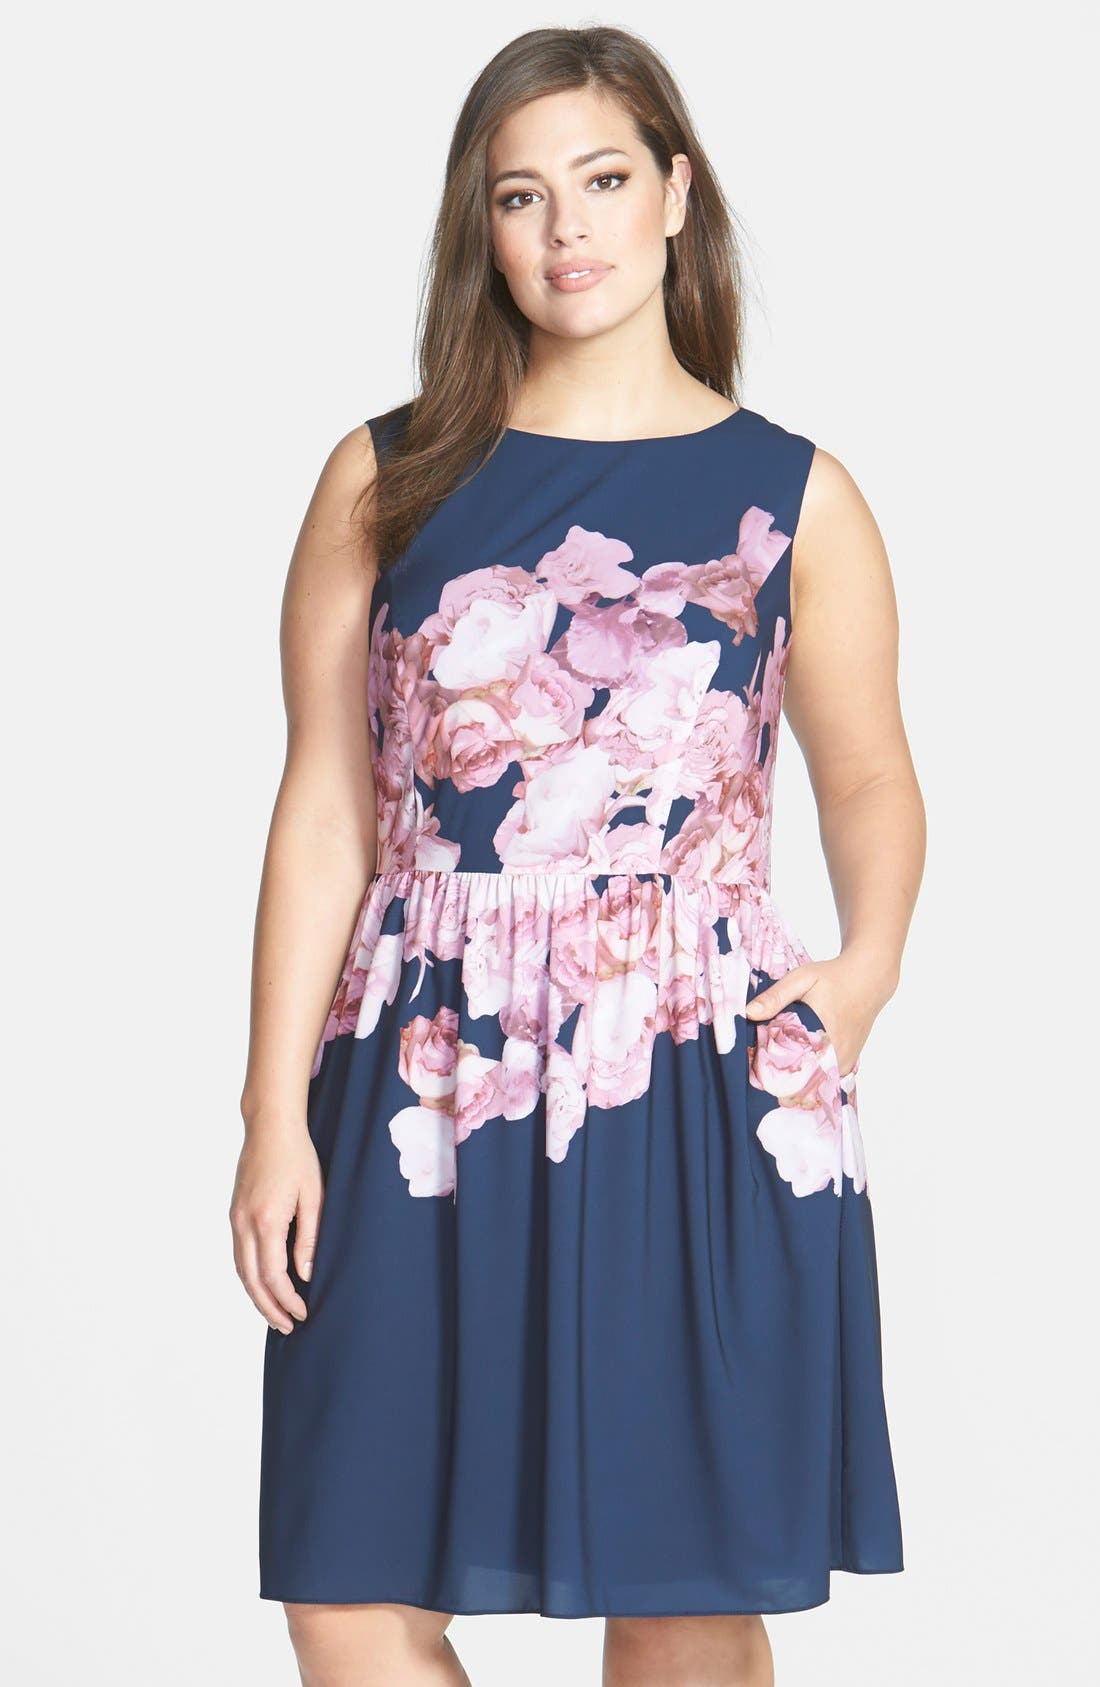 Main Image - Adrianna Papell Floral Print Chiffon Fit & Flare Dress (Plus Size)